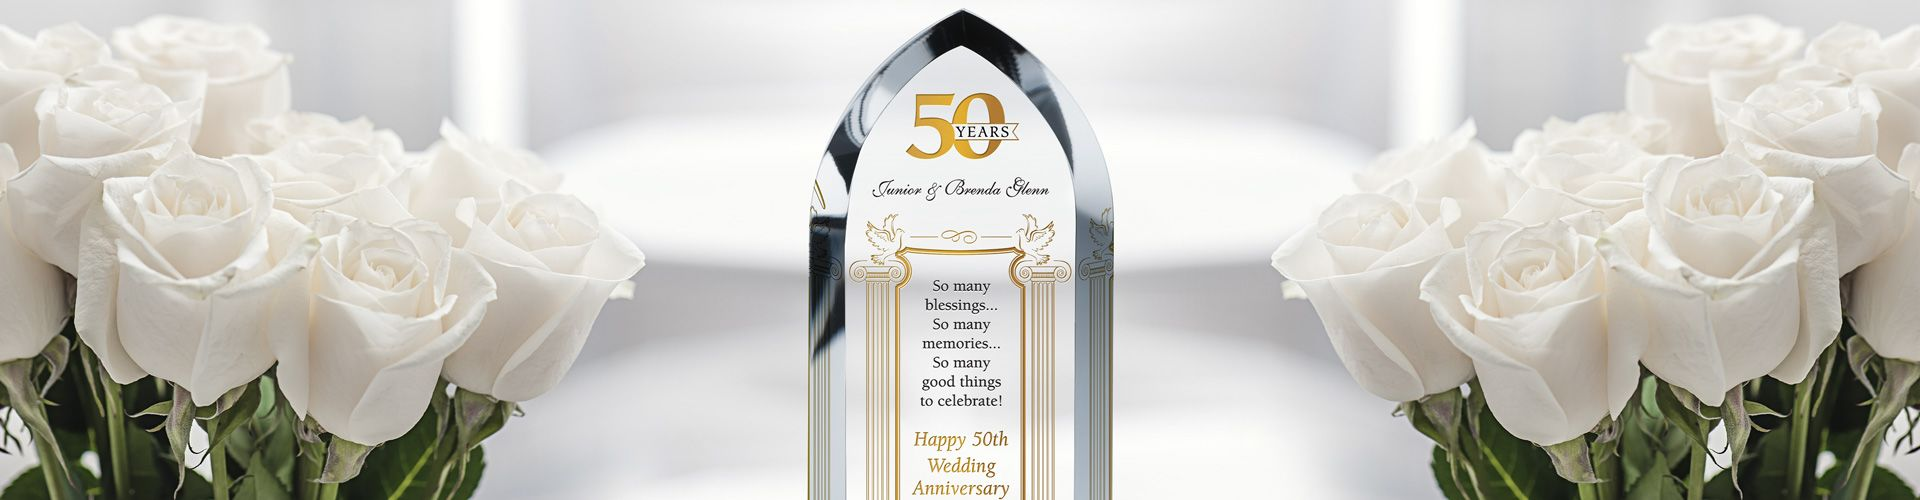 50th Wedding Anniversary Wording Ideas And Sample Layout Diy Awards